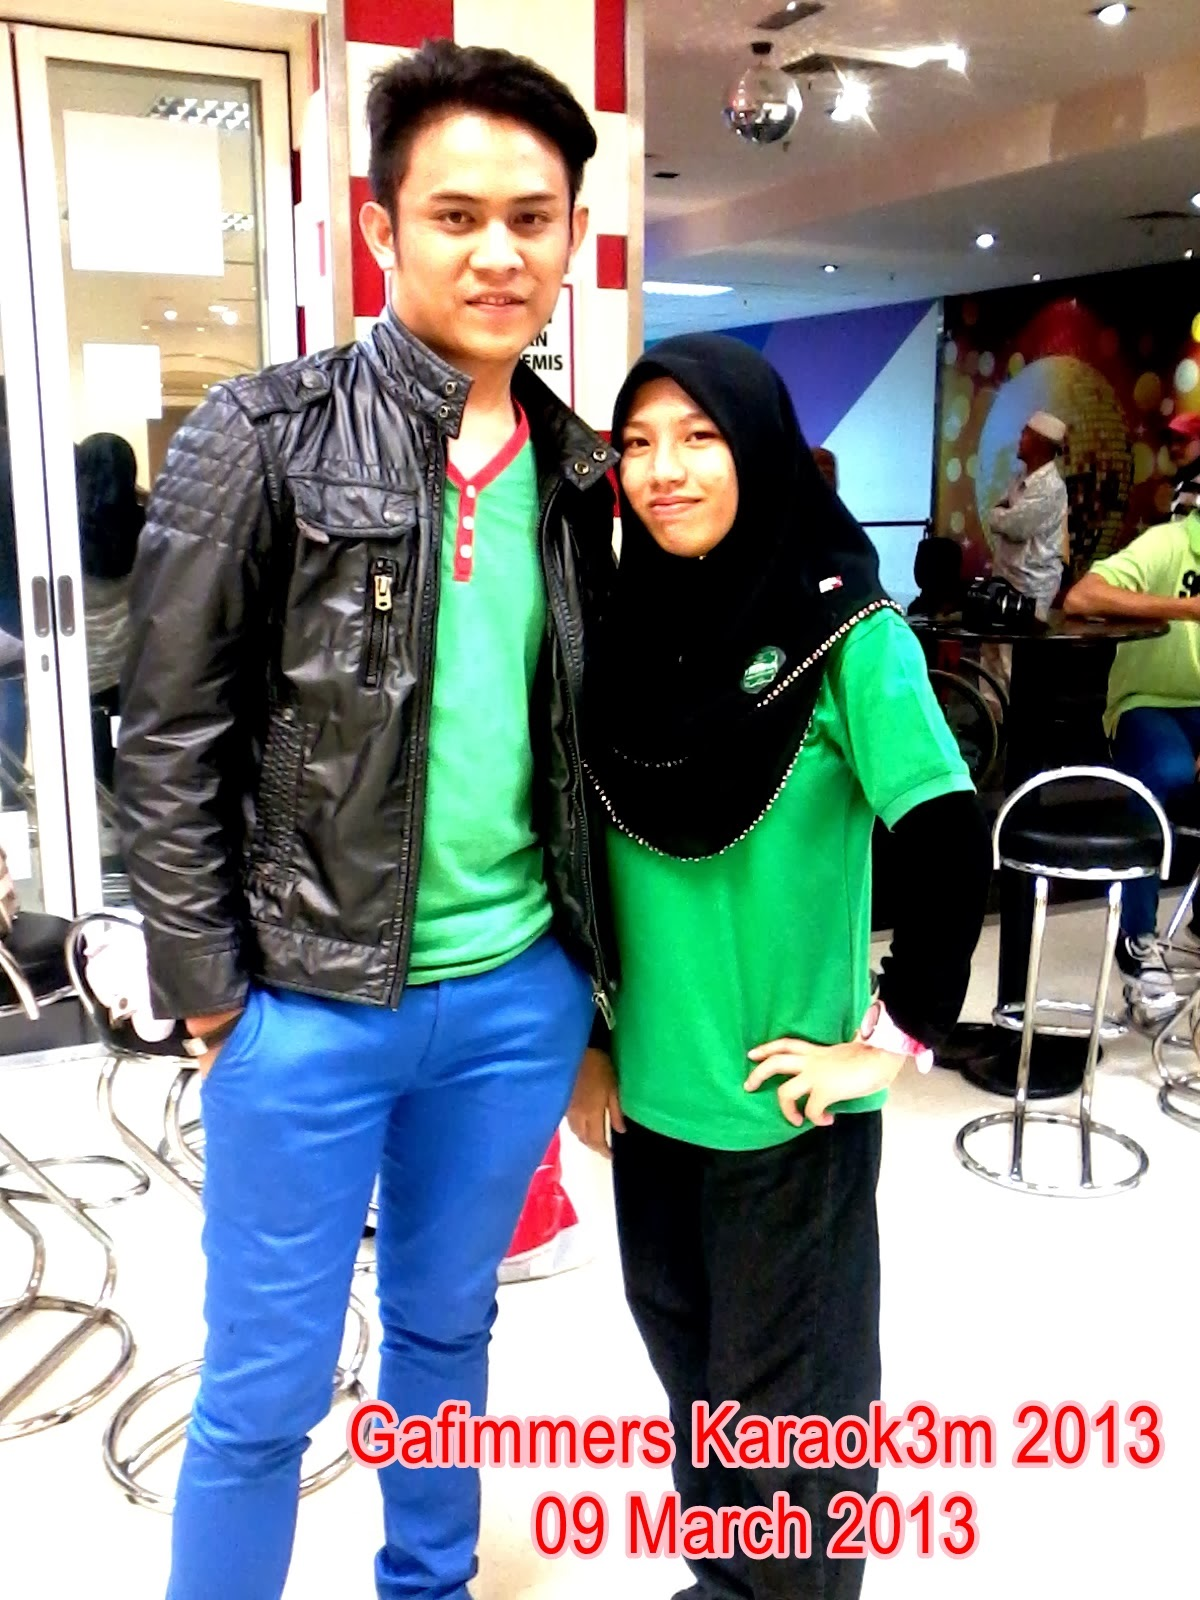 With Akim Ahmad